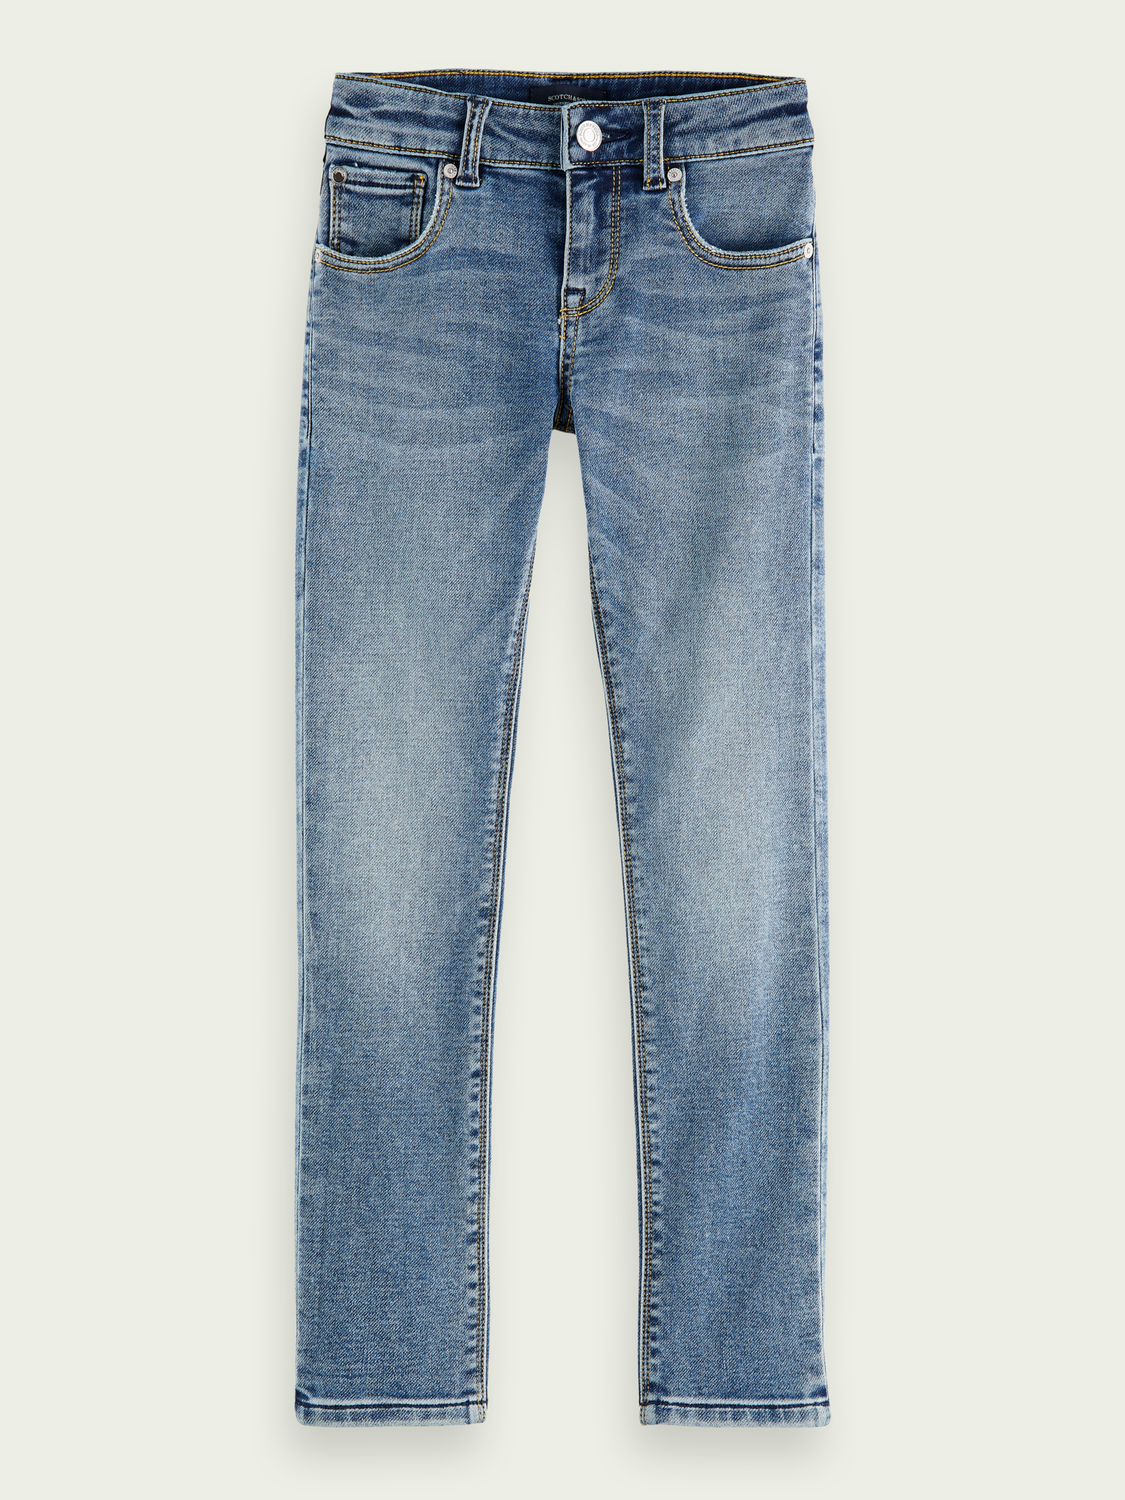 Kinder Tigger Super Skinny Mid Rise Jeans – Weathered Blue Light